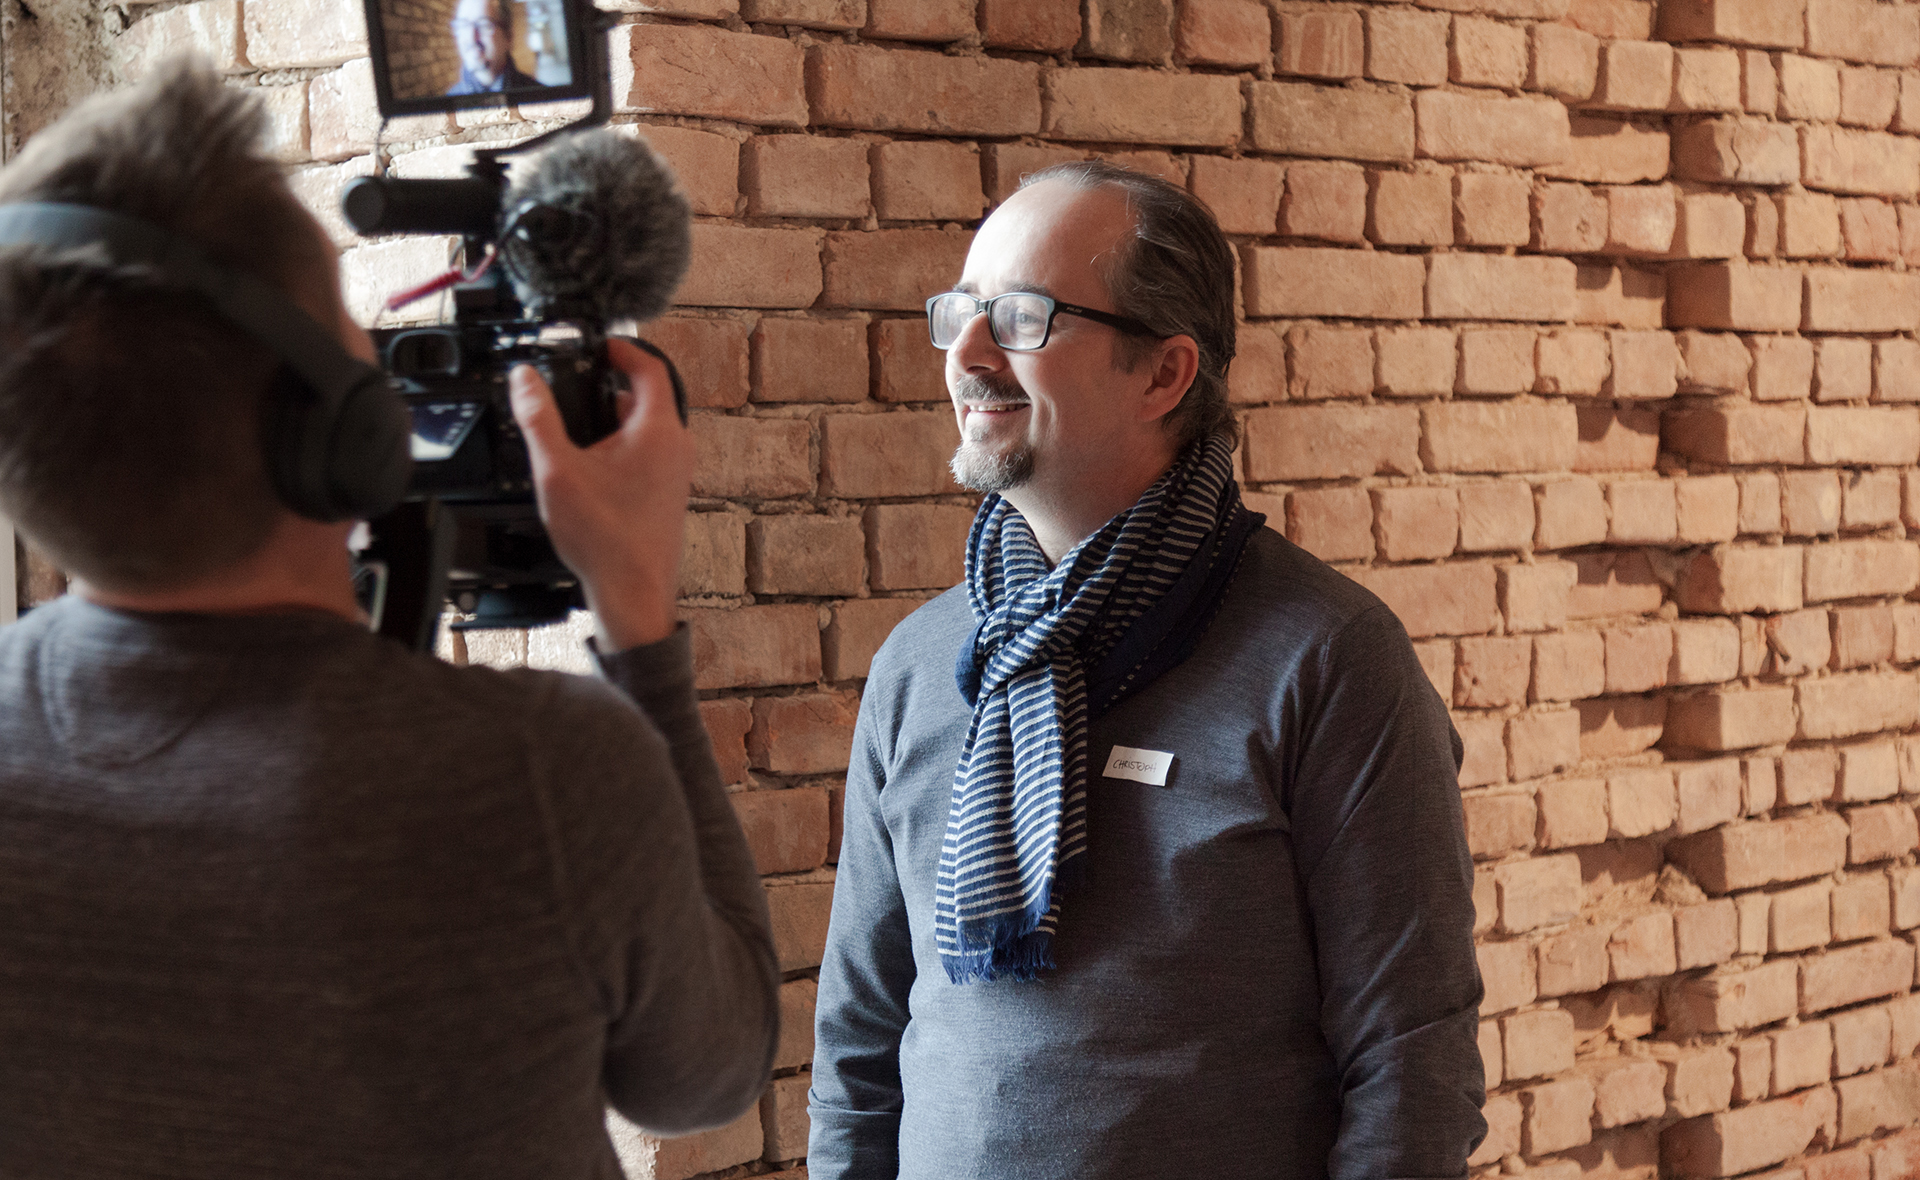 Blackspace's Christoph Rohrer laughs during an interview.